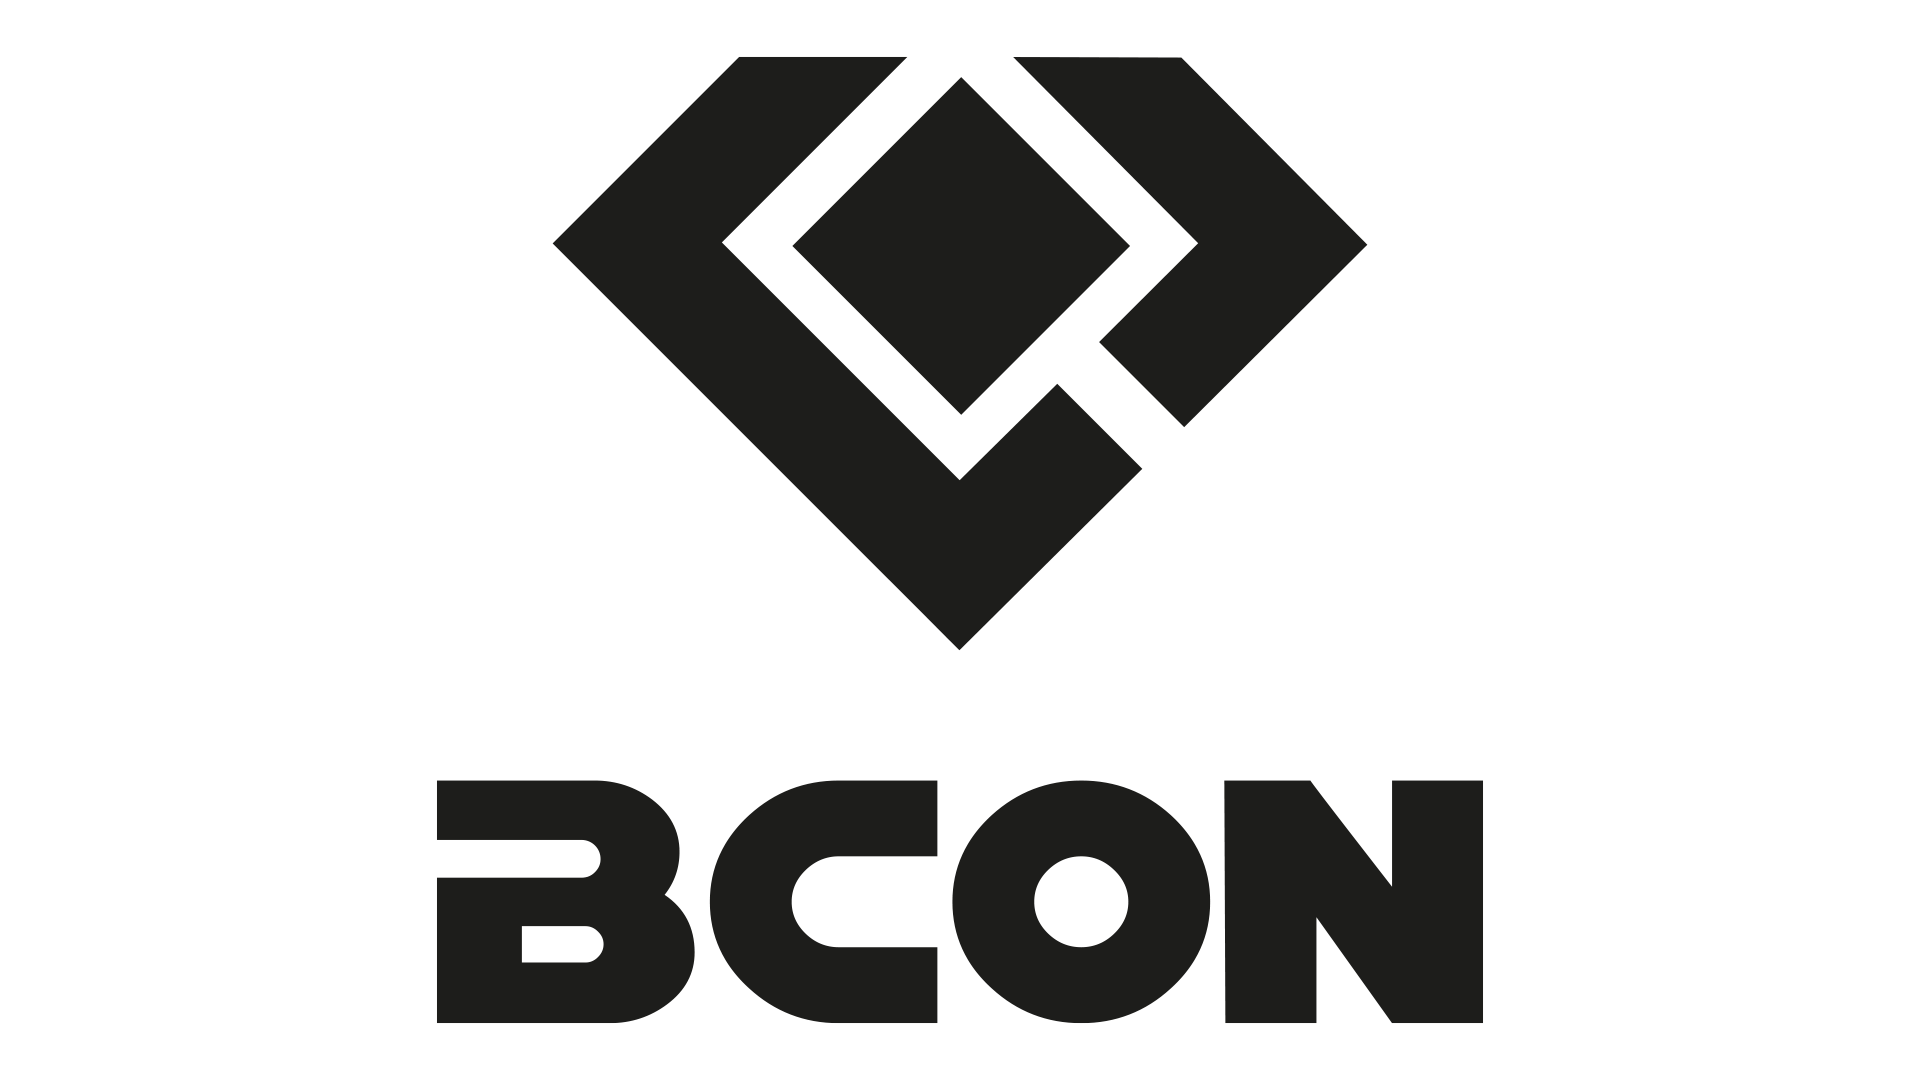 BCON Gaming Wearable Controller